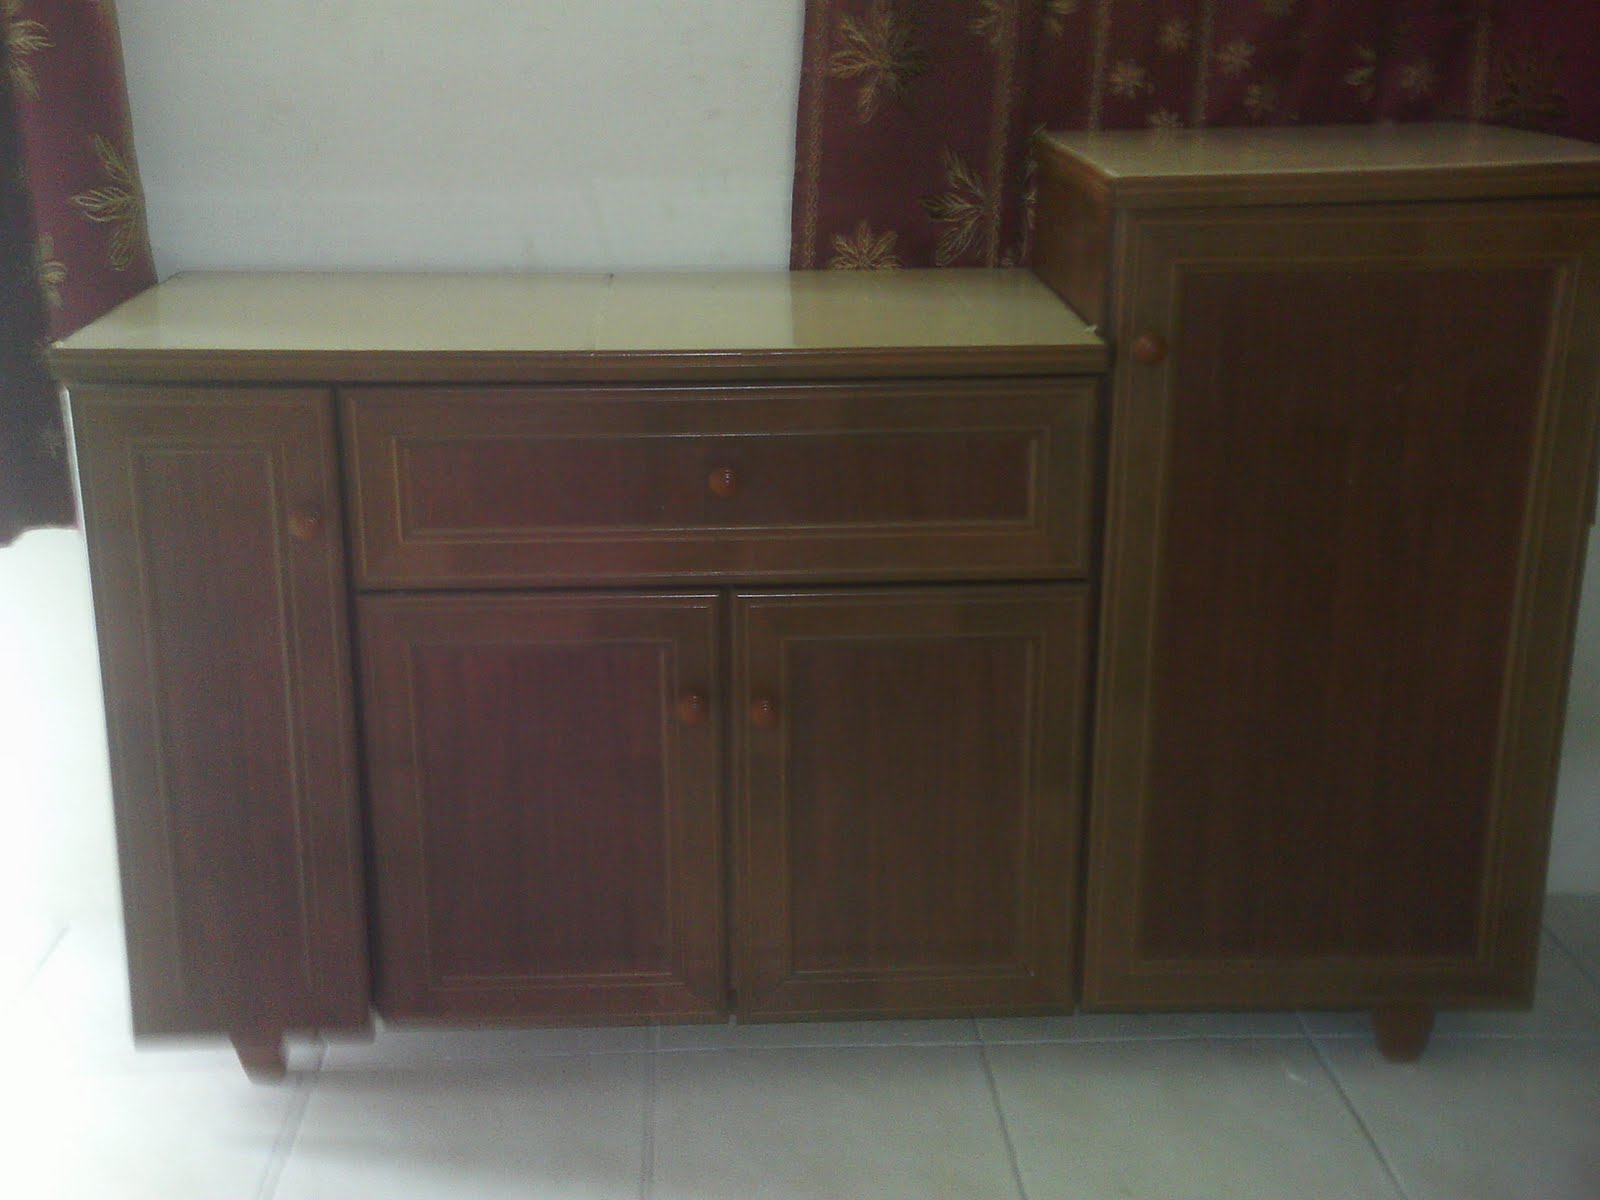 Cabinets & Gas Stove